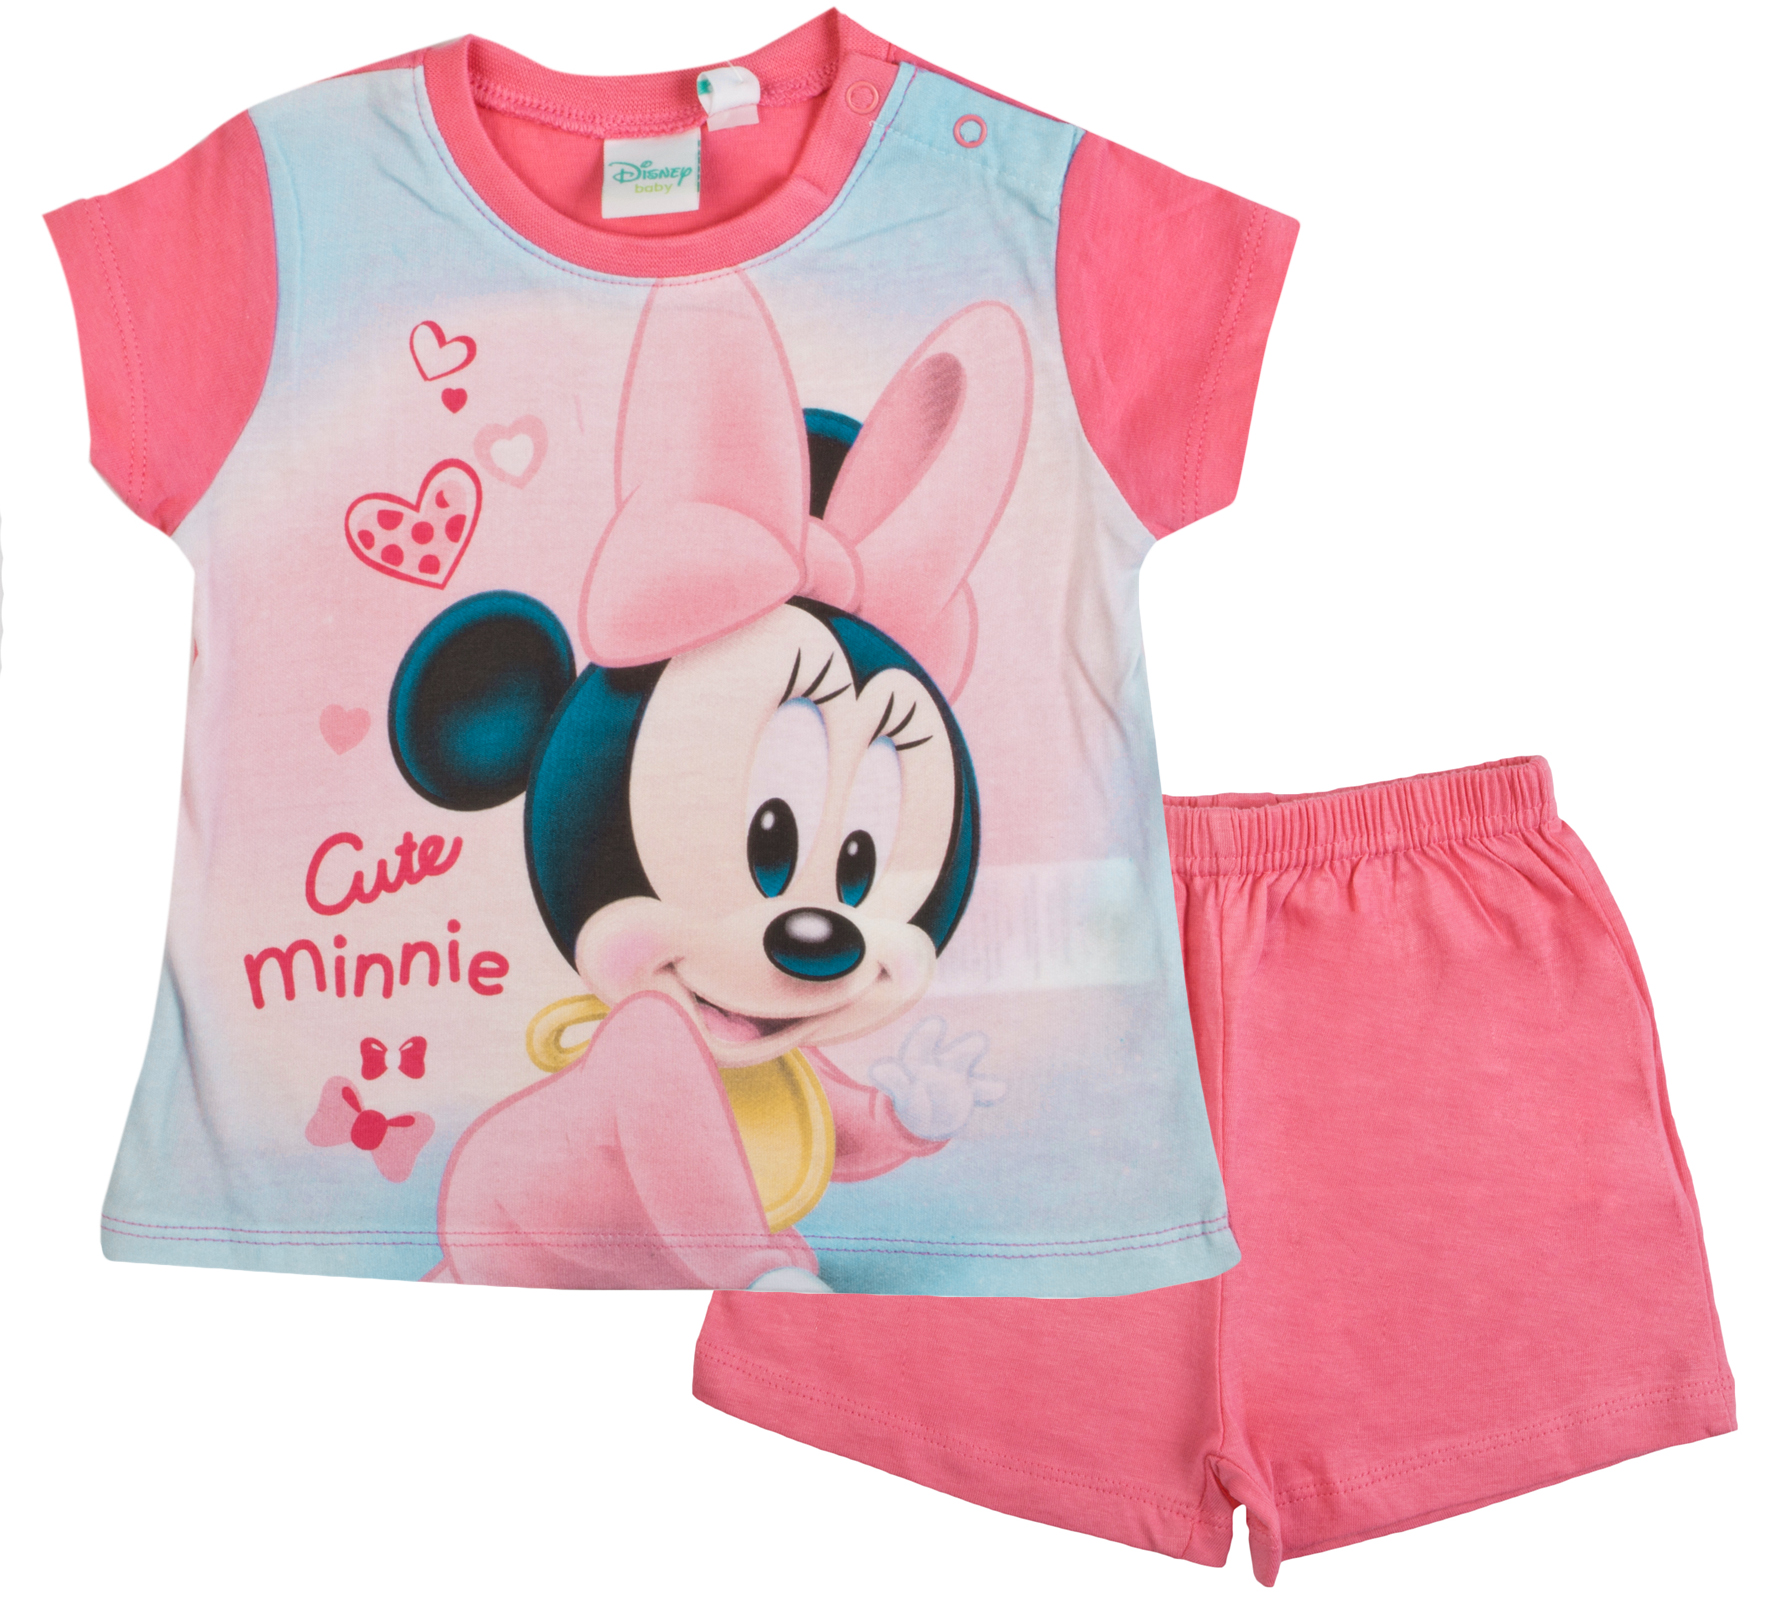 42d80cbcf9 Disney Minnie Mouse Baby Girls Short Pyjamas Infants Shortie Summer ...